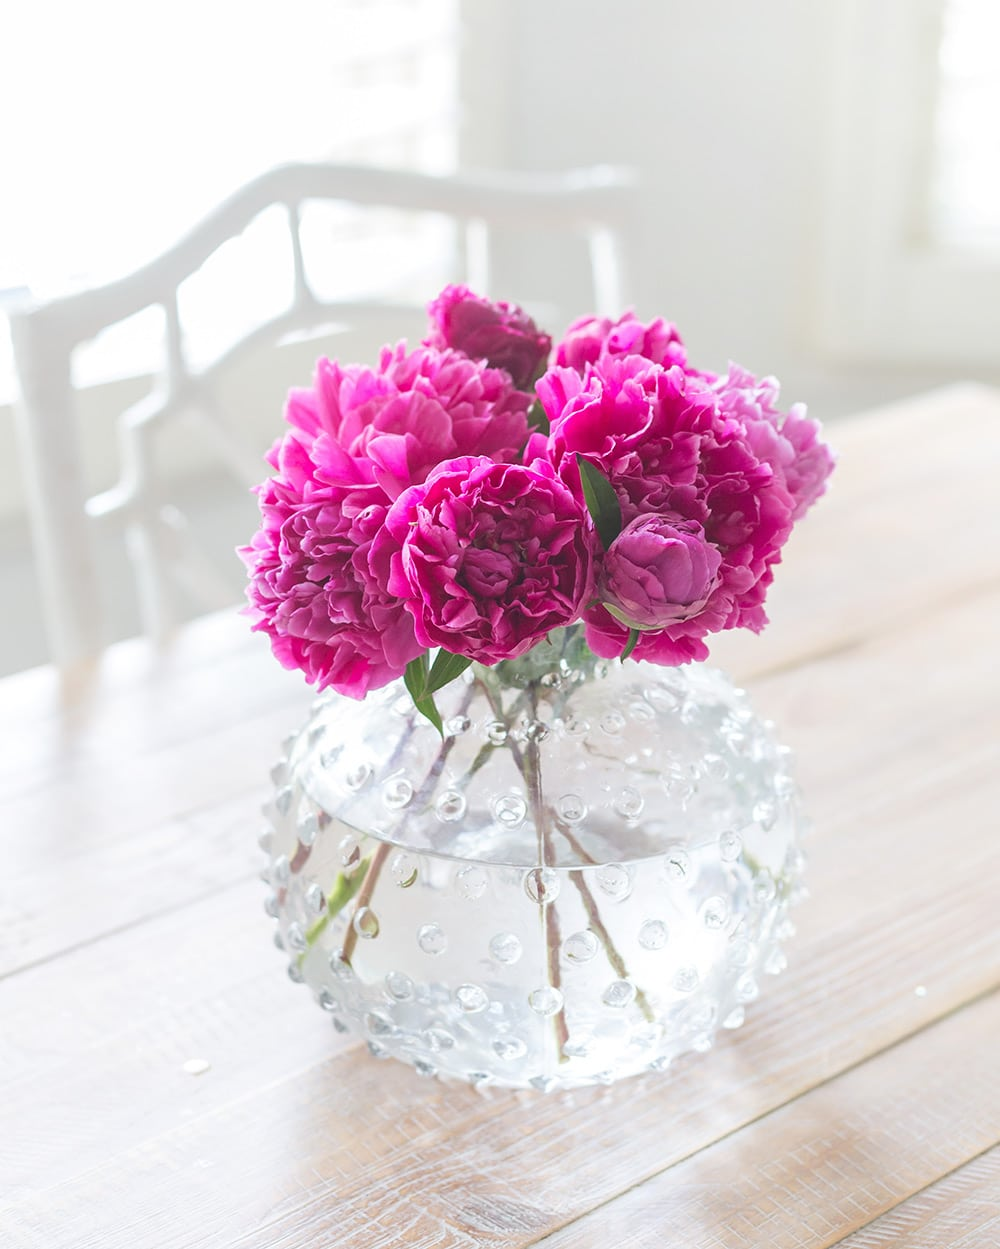 A vase filled with pink peonies sitting on a table